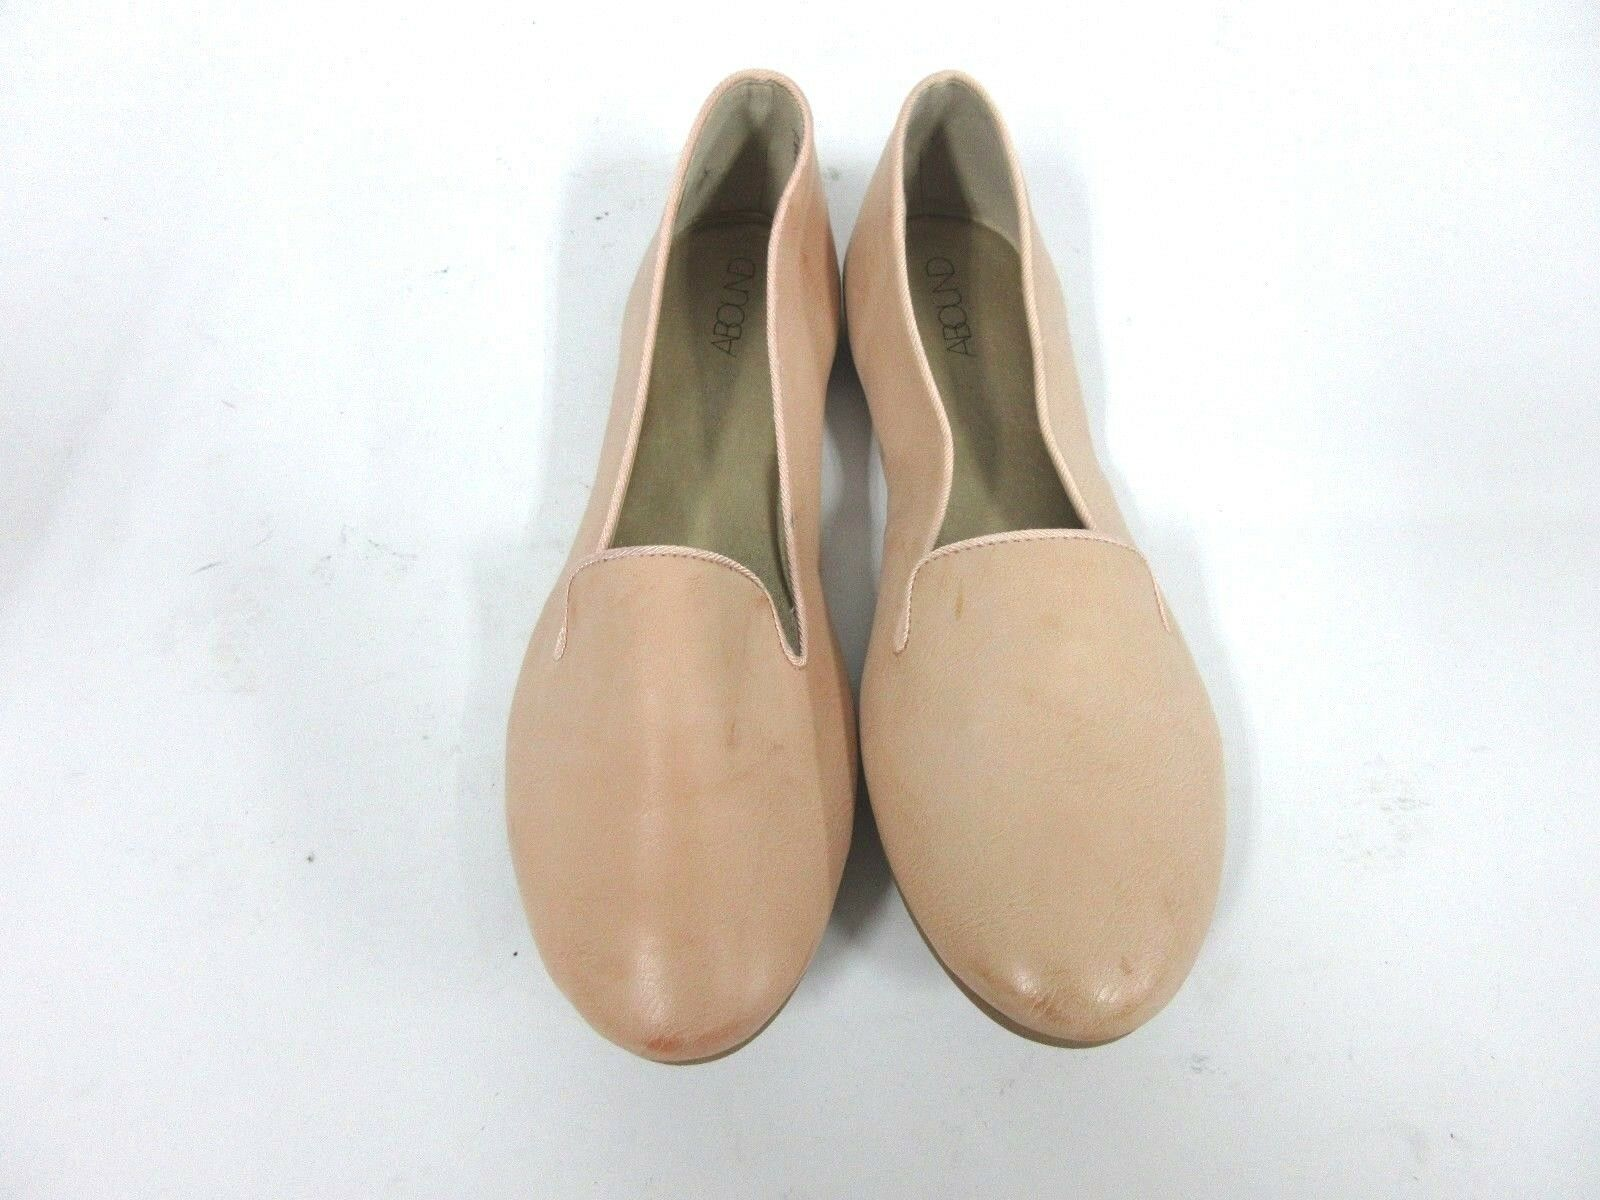 New Abound Nude Loafer-Style flats 7 Nude Size: 7 flats 2c20d0